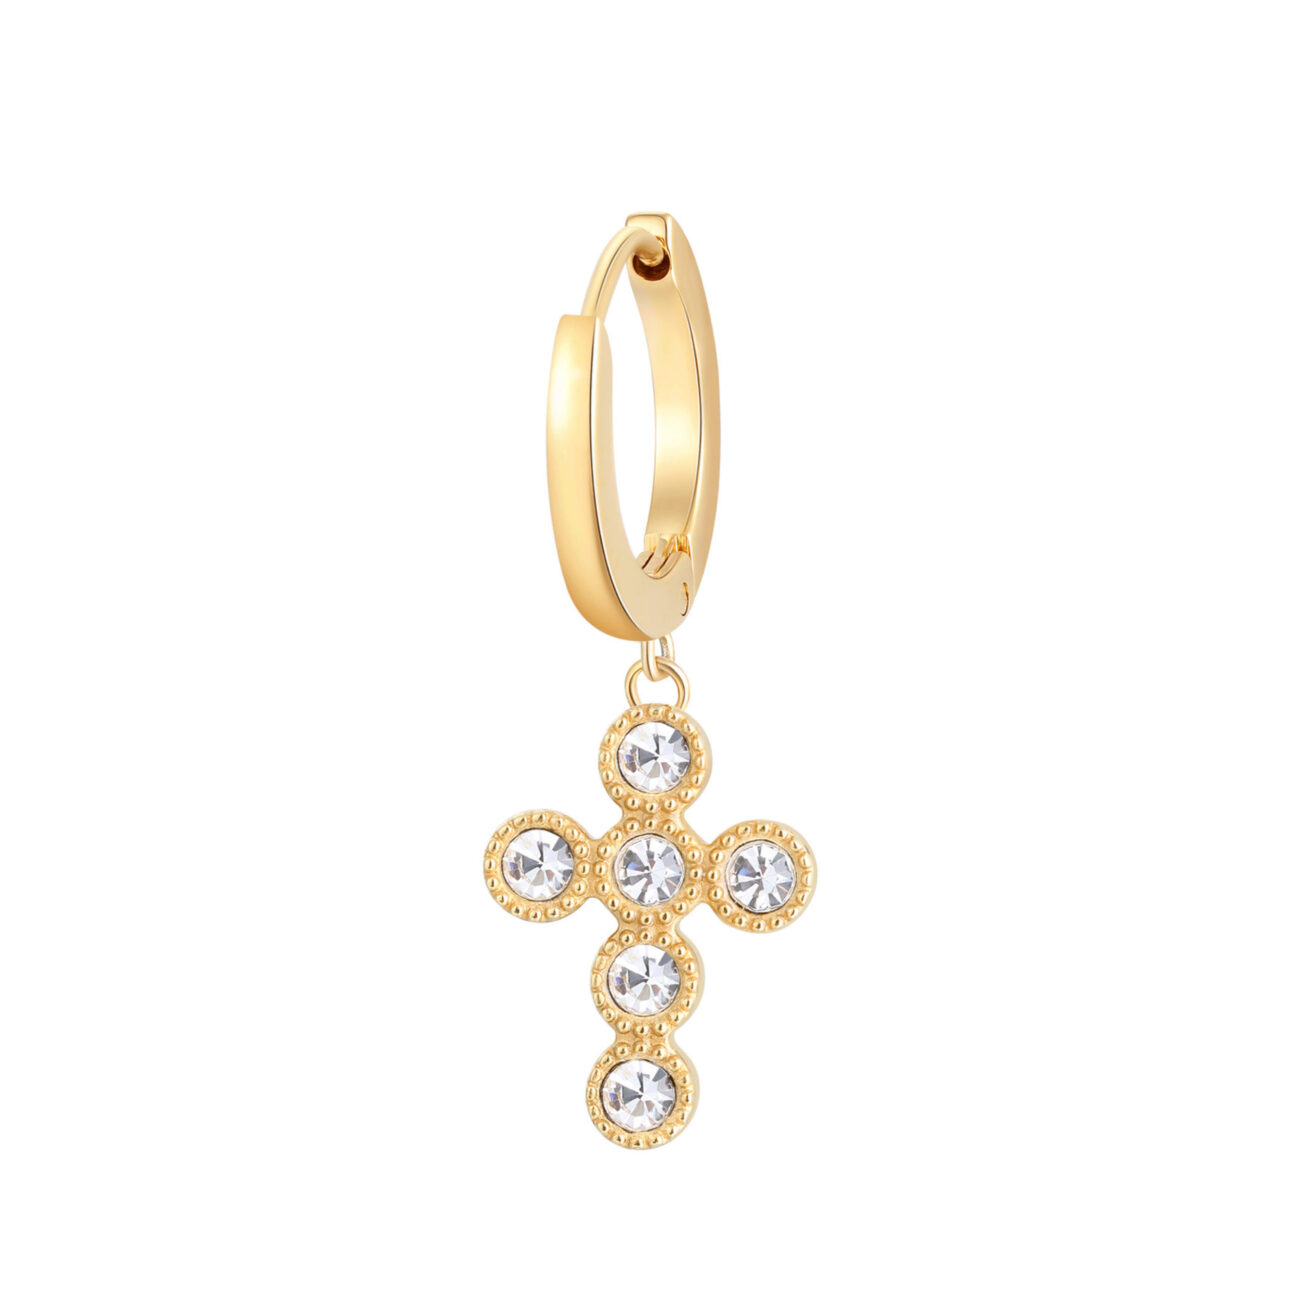 Single earring in 316L stainless steel, gold finish with cross-shaped pendant and crystal.